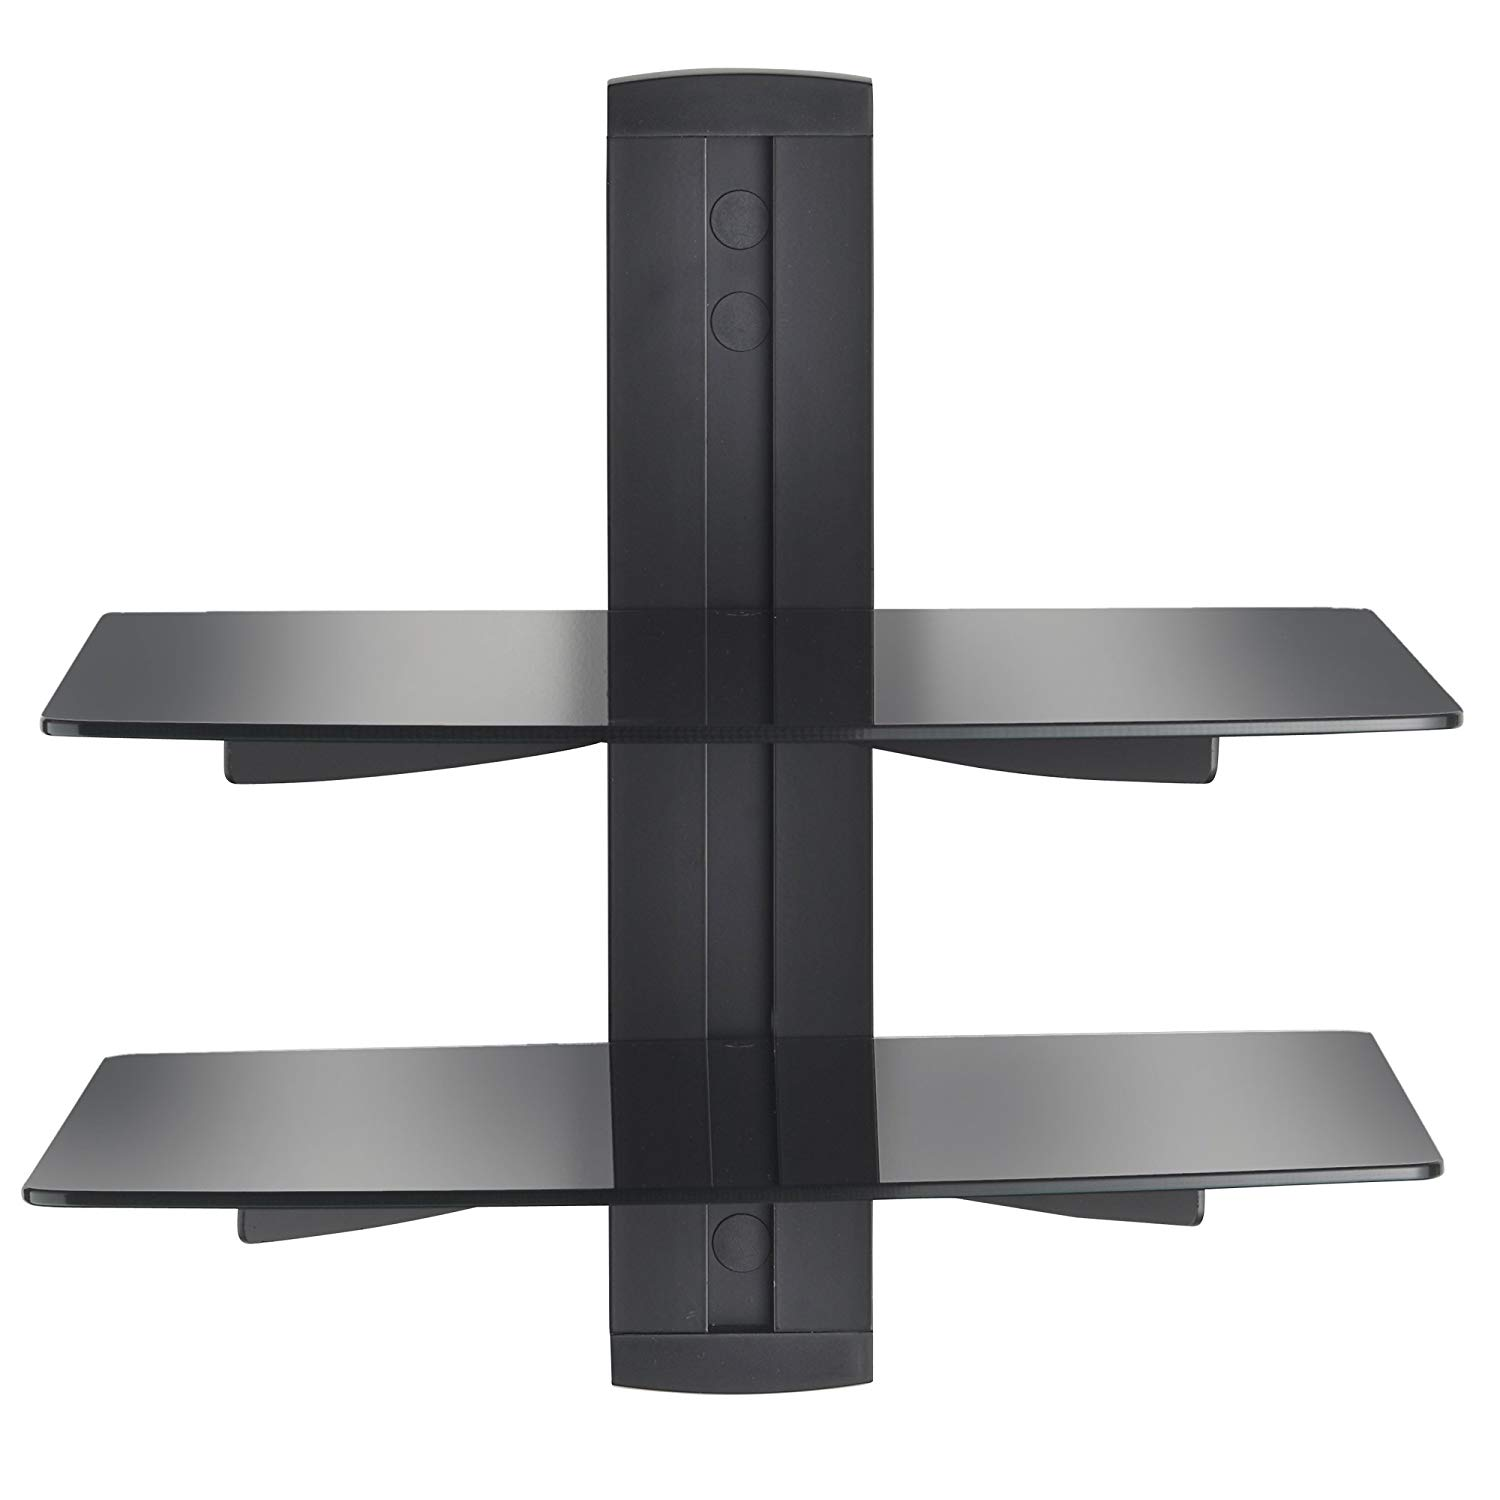 vonhaus black floating shelves with strengthened shelf instructions tempered glass for dvd players cable boxes games consoles accessories home kitchen wall mounted shelving units